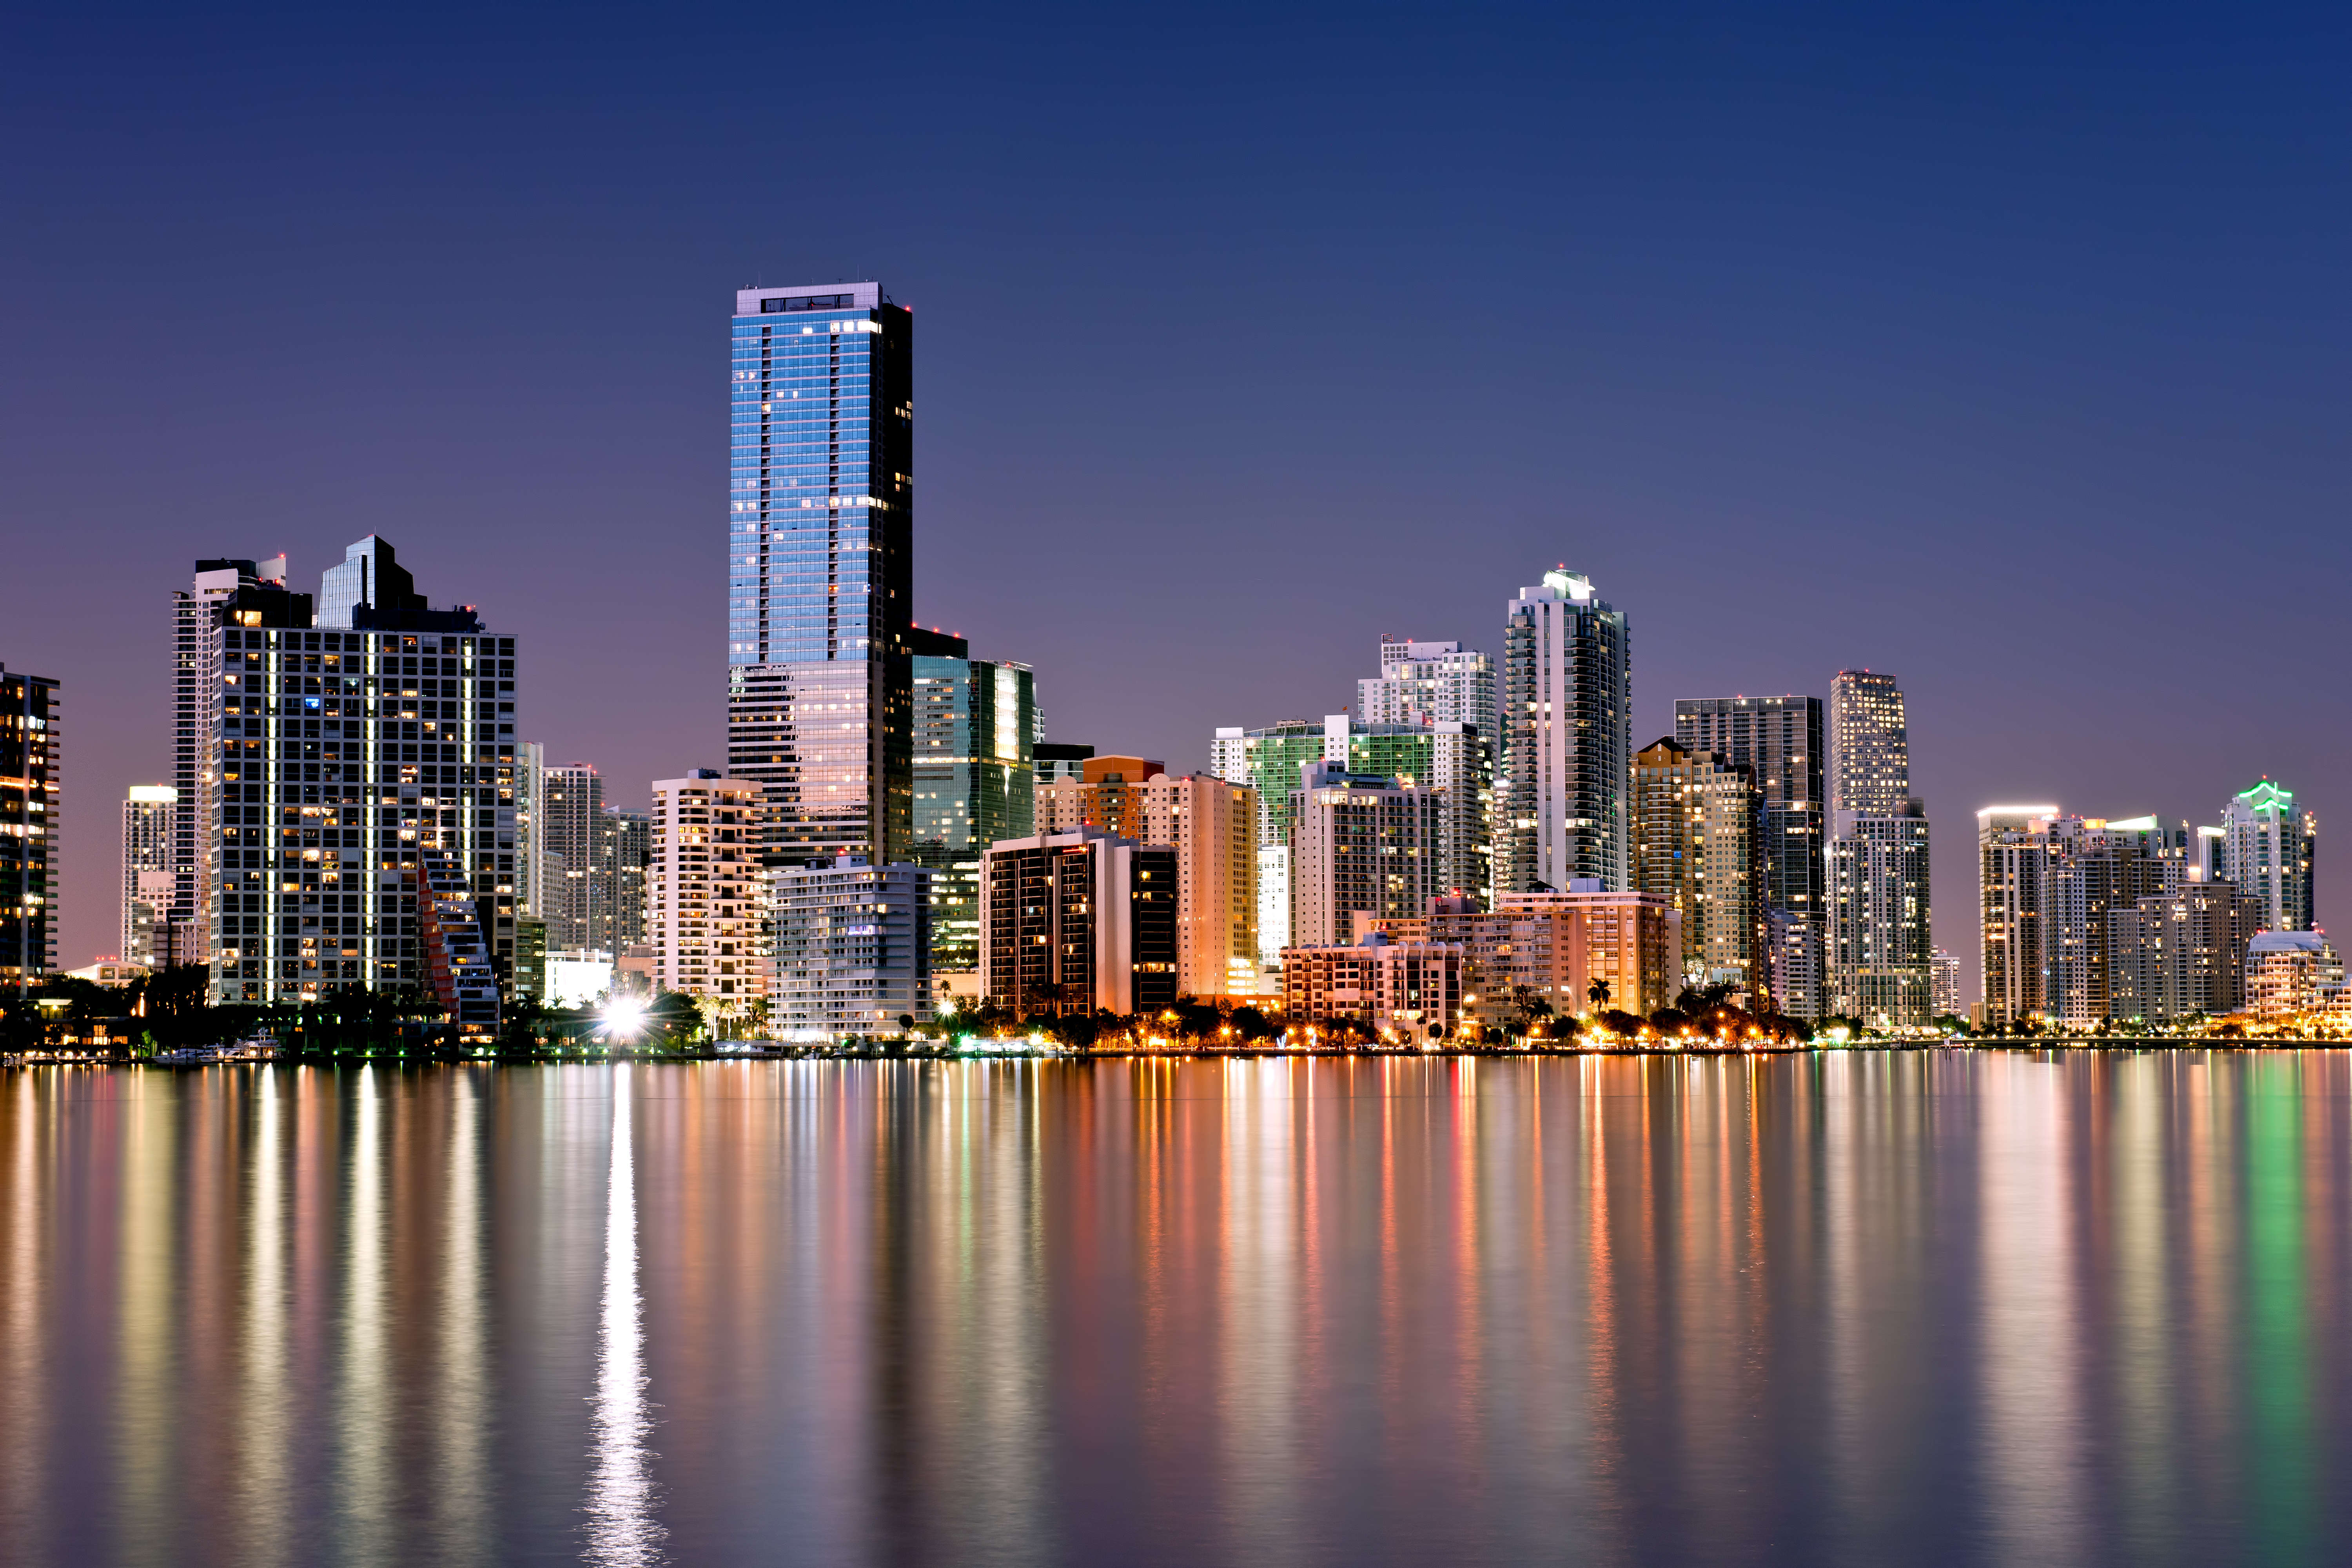 Miami Skyline Exclusive HD Wallpapers 4741 6000x4000